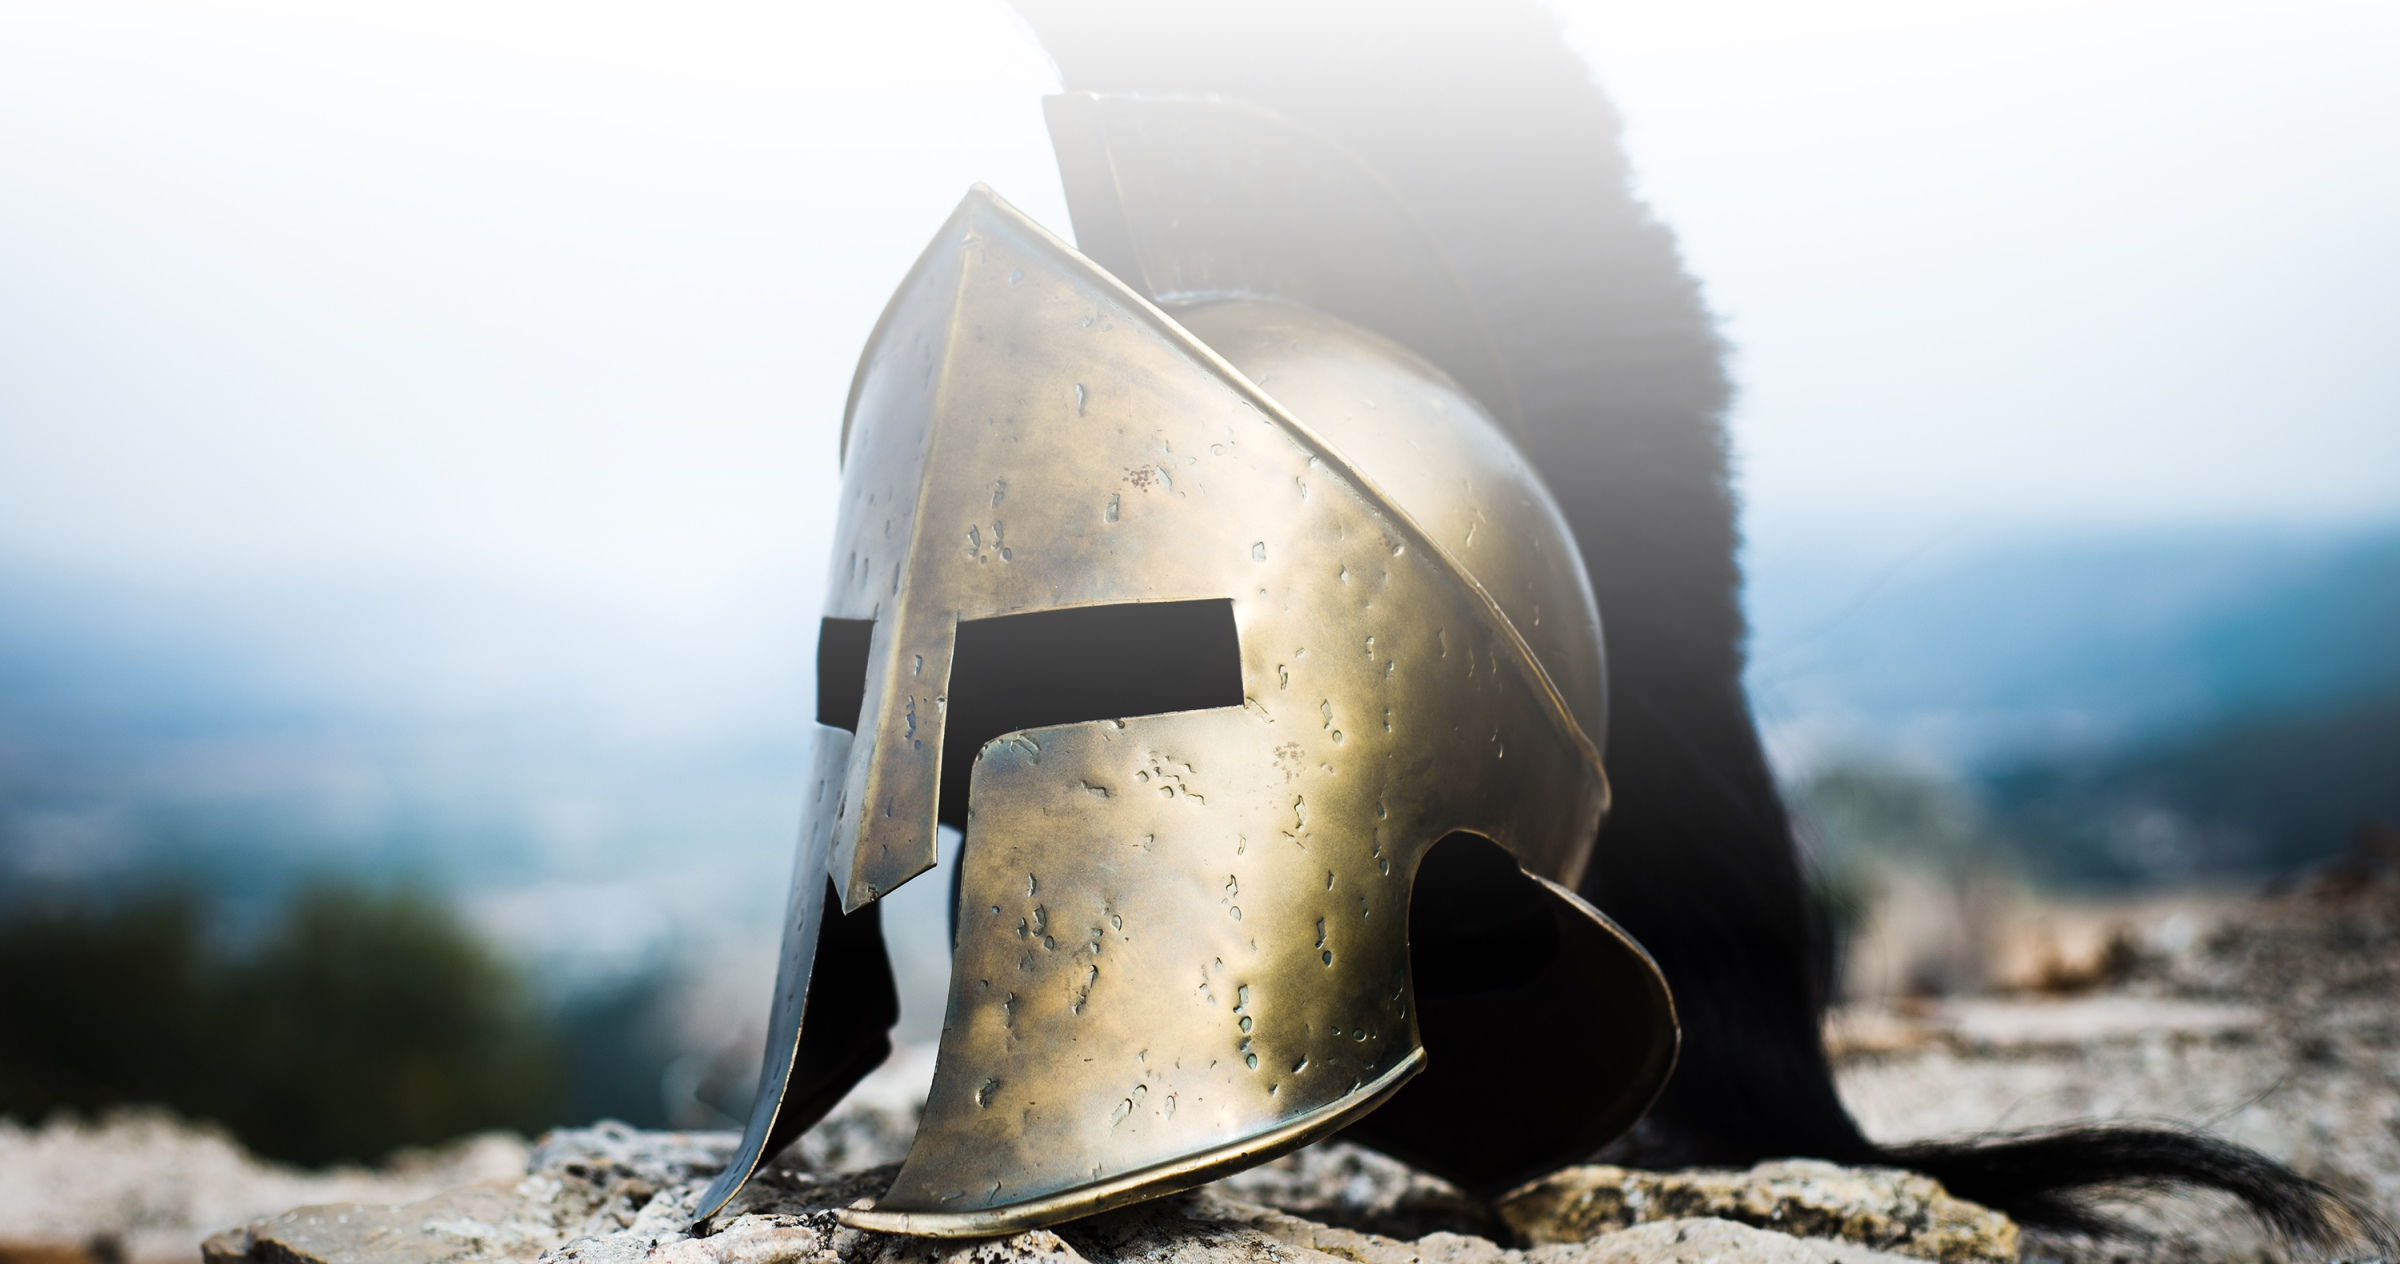 A Spartan helmet rests on rocks with a blurry background.